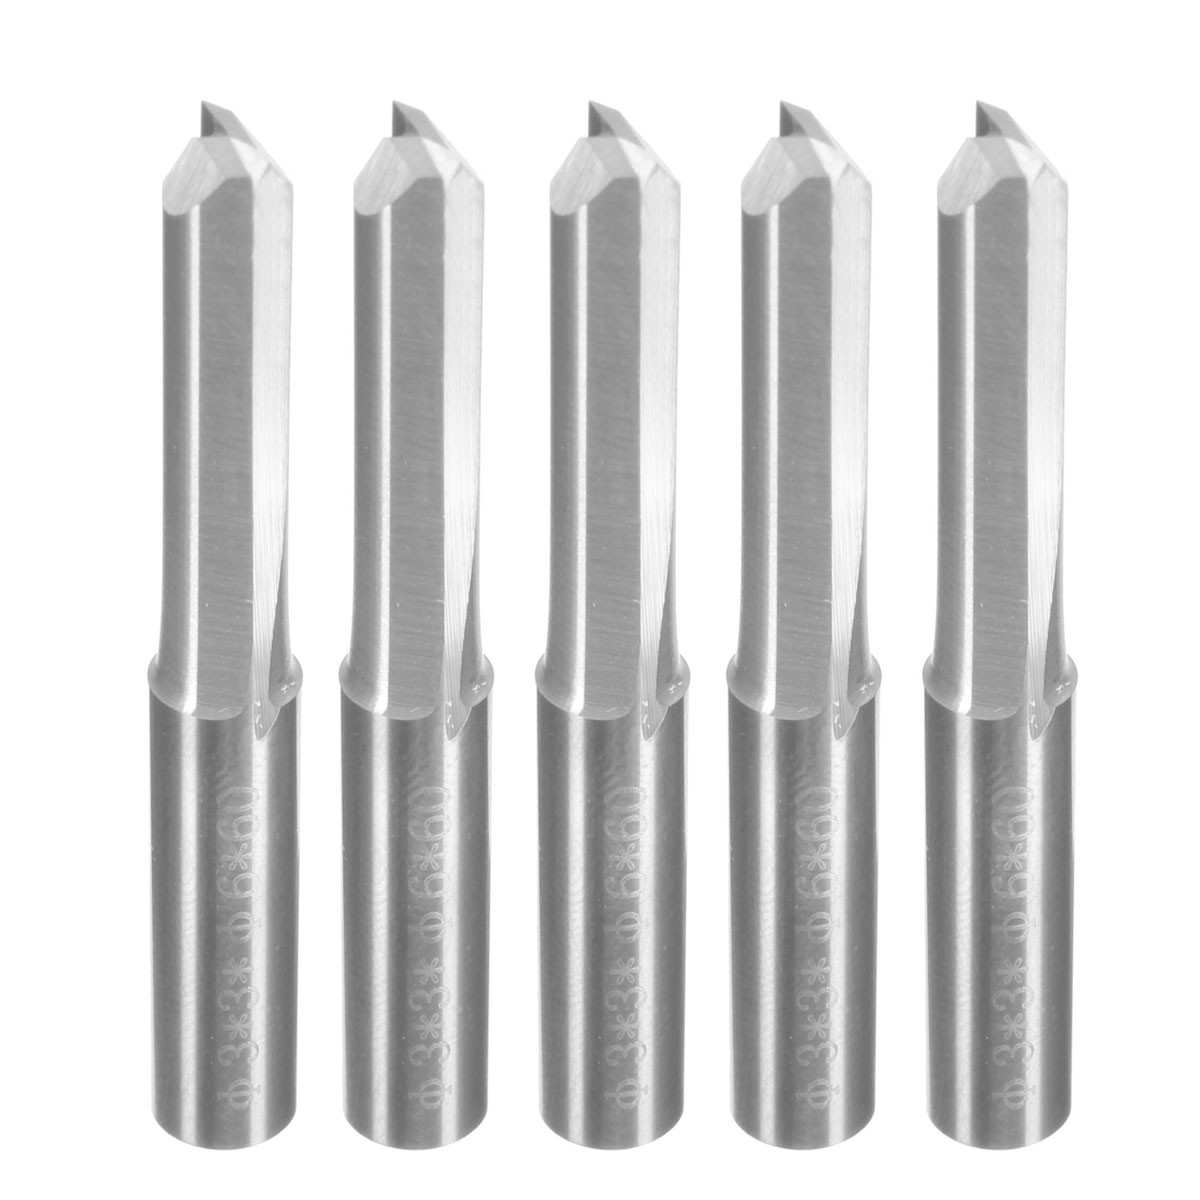 Top Quality 5pcs/set 6mm Double Flute Straight Slot CNC Router <font><b>Bits</b></font> Endmill Milling Cutter for Woodworking Best Price